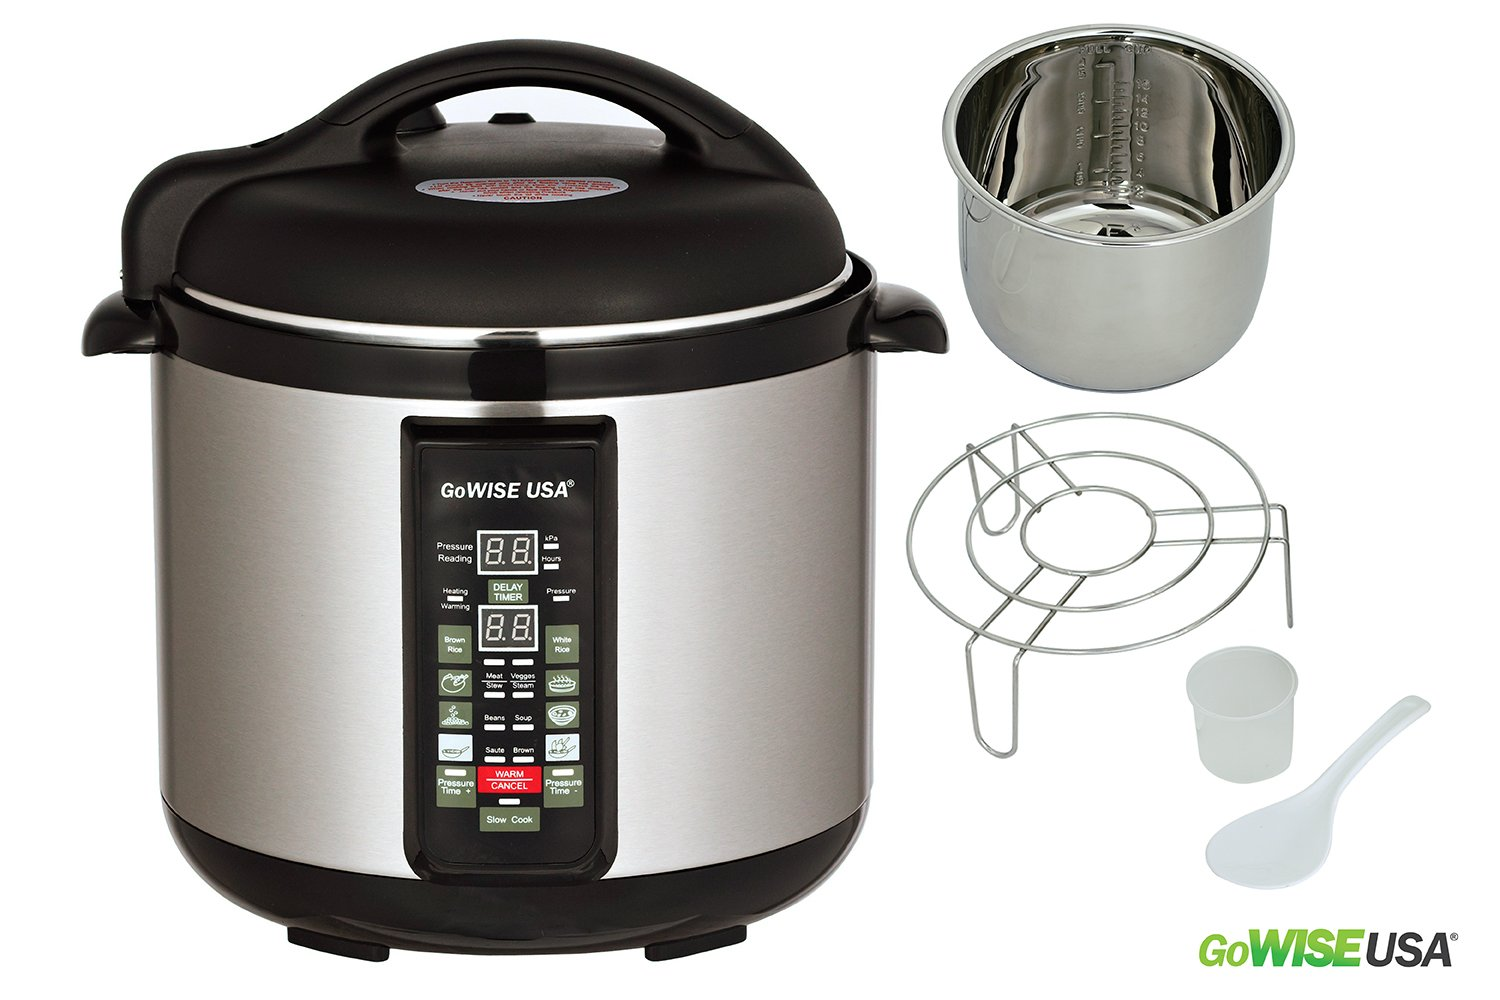 GoWise 6-in-1 Stainless Steel Electric Pressure Cooker/Slow Cooker (4 QT)